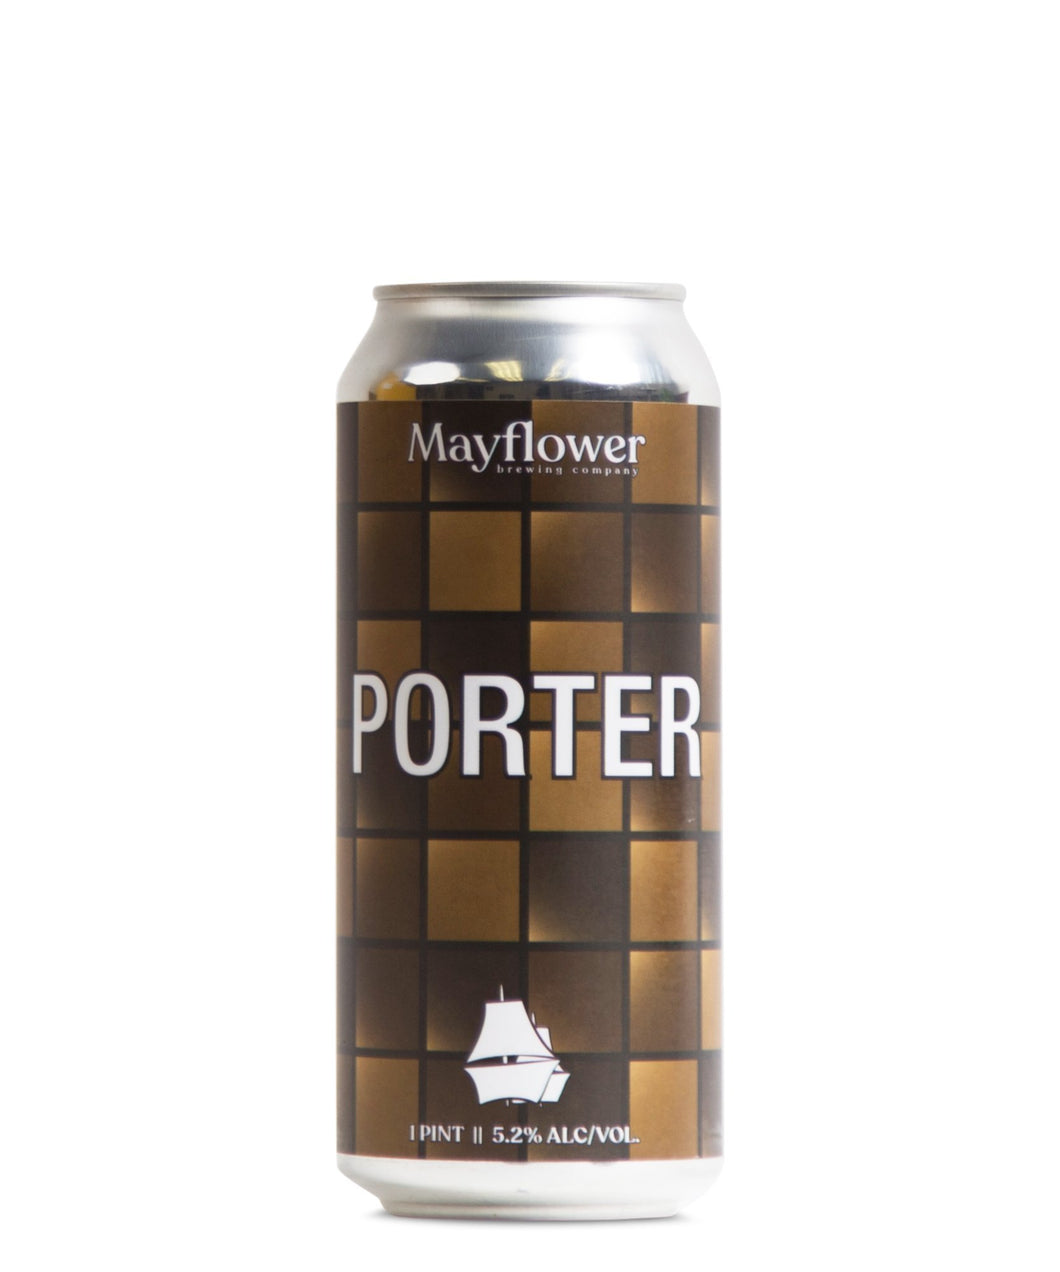 Mayflower Porter - Mayflower Brewing Company Delivered By TapRm